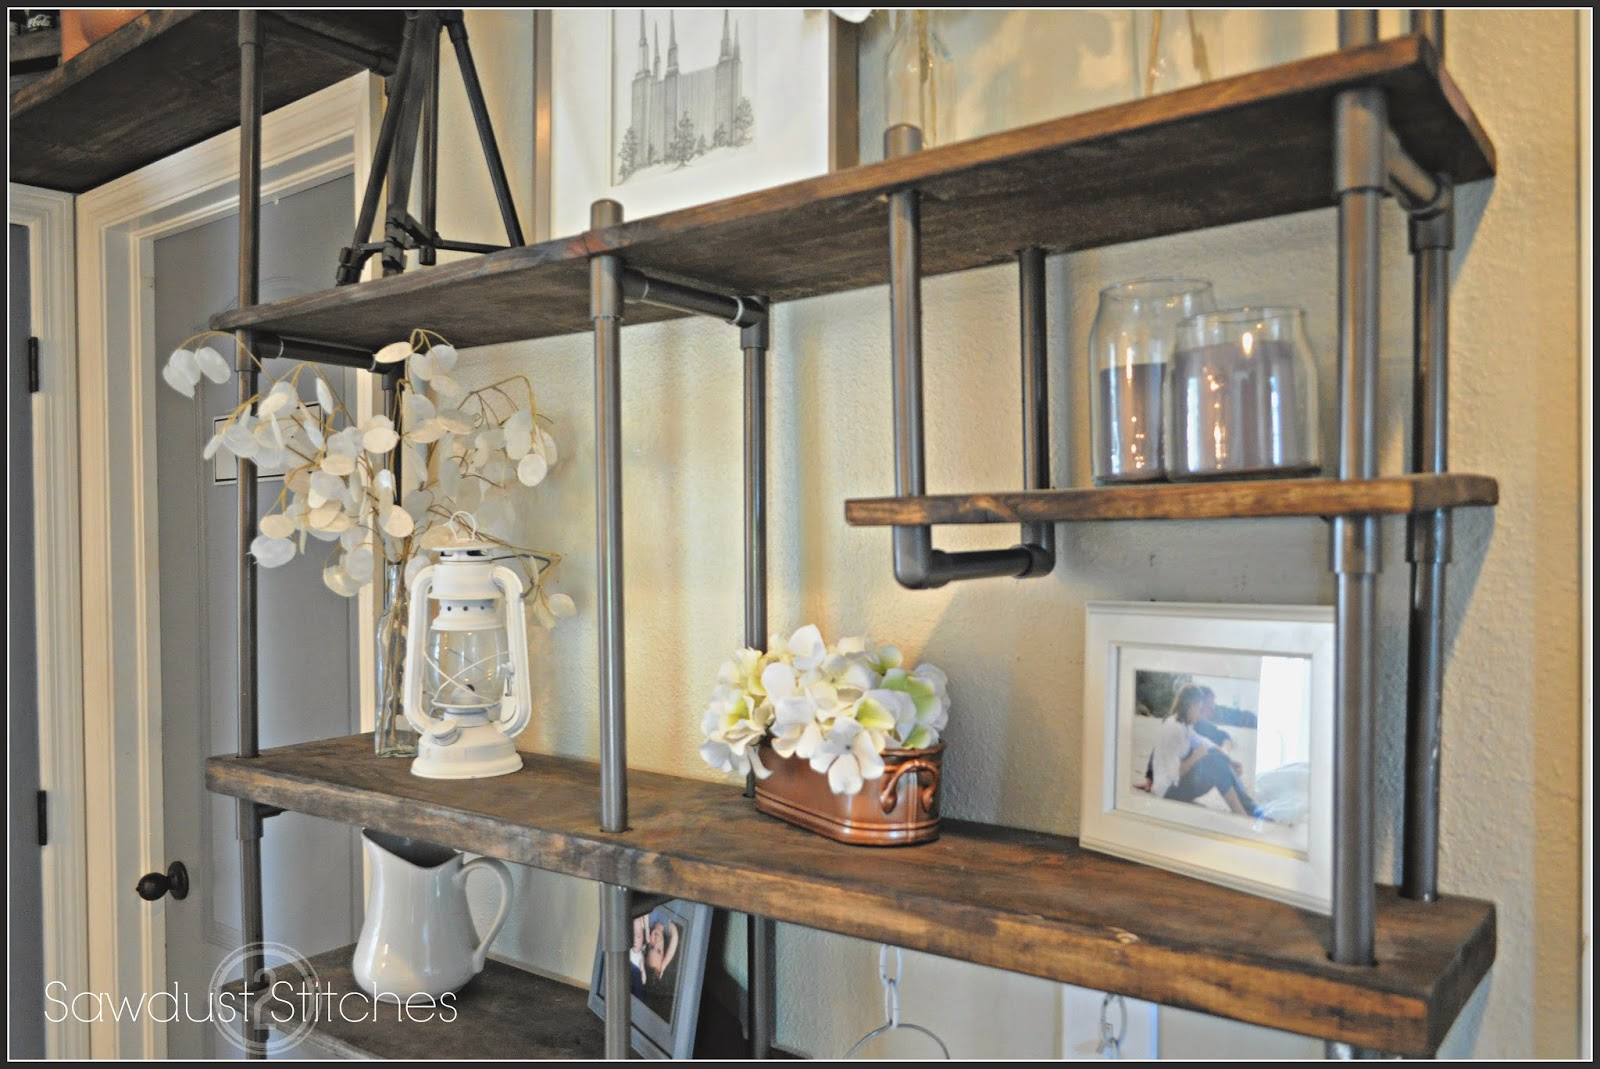 Remodelaholic | Build a Budget-Friendly Industrial Shelf ...